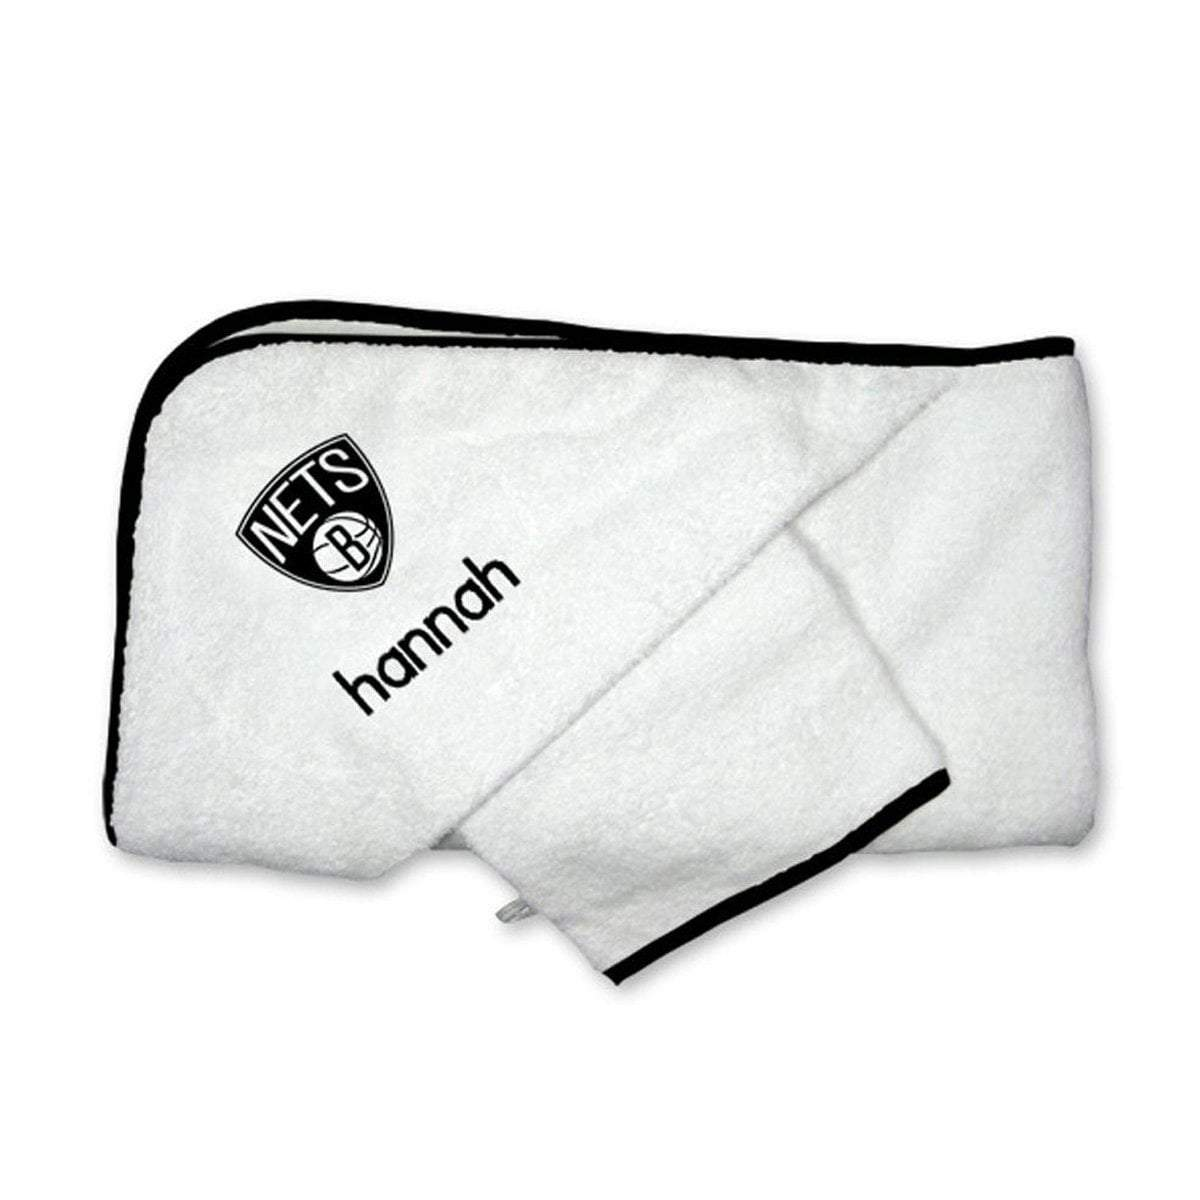 Chad & Jake Accessories Brooklyn Nets Personalized Hooded Towel Set by Chad & Jake